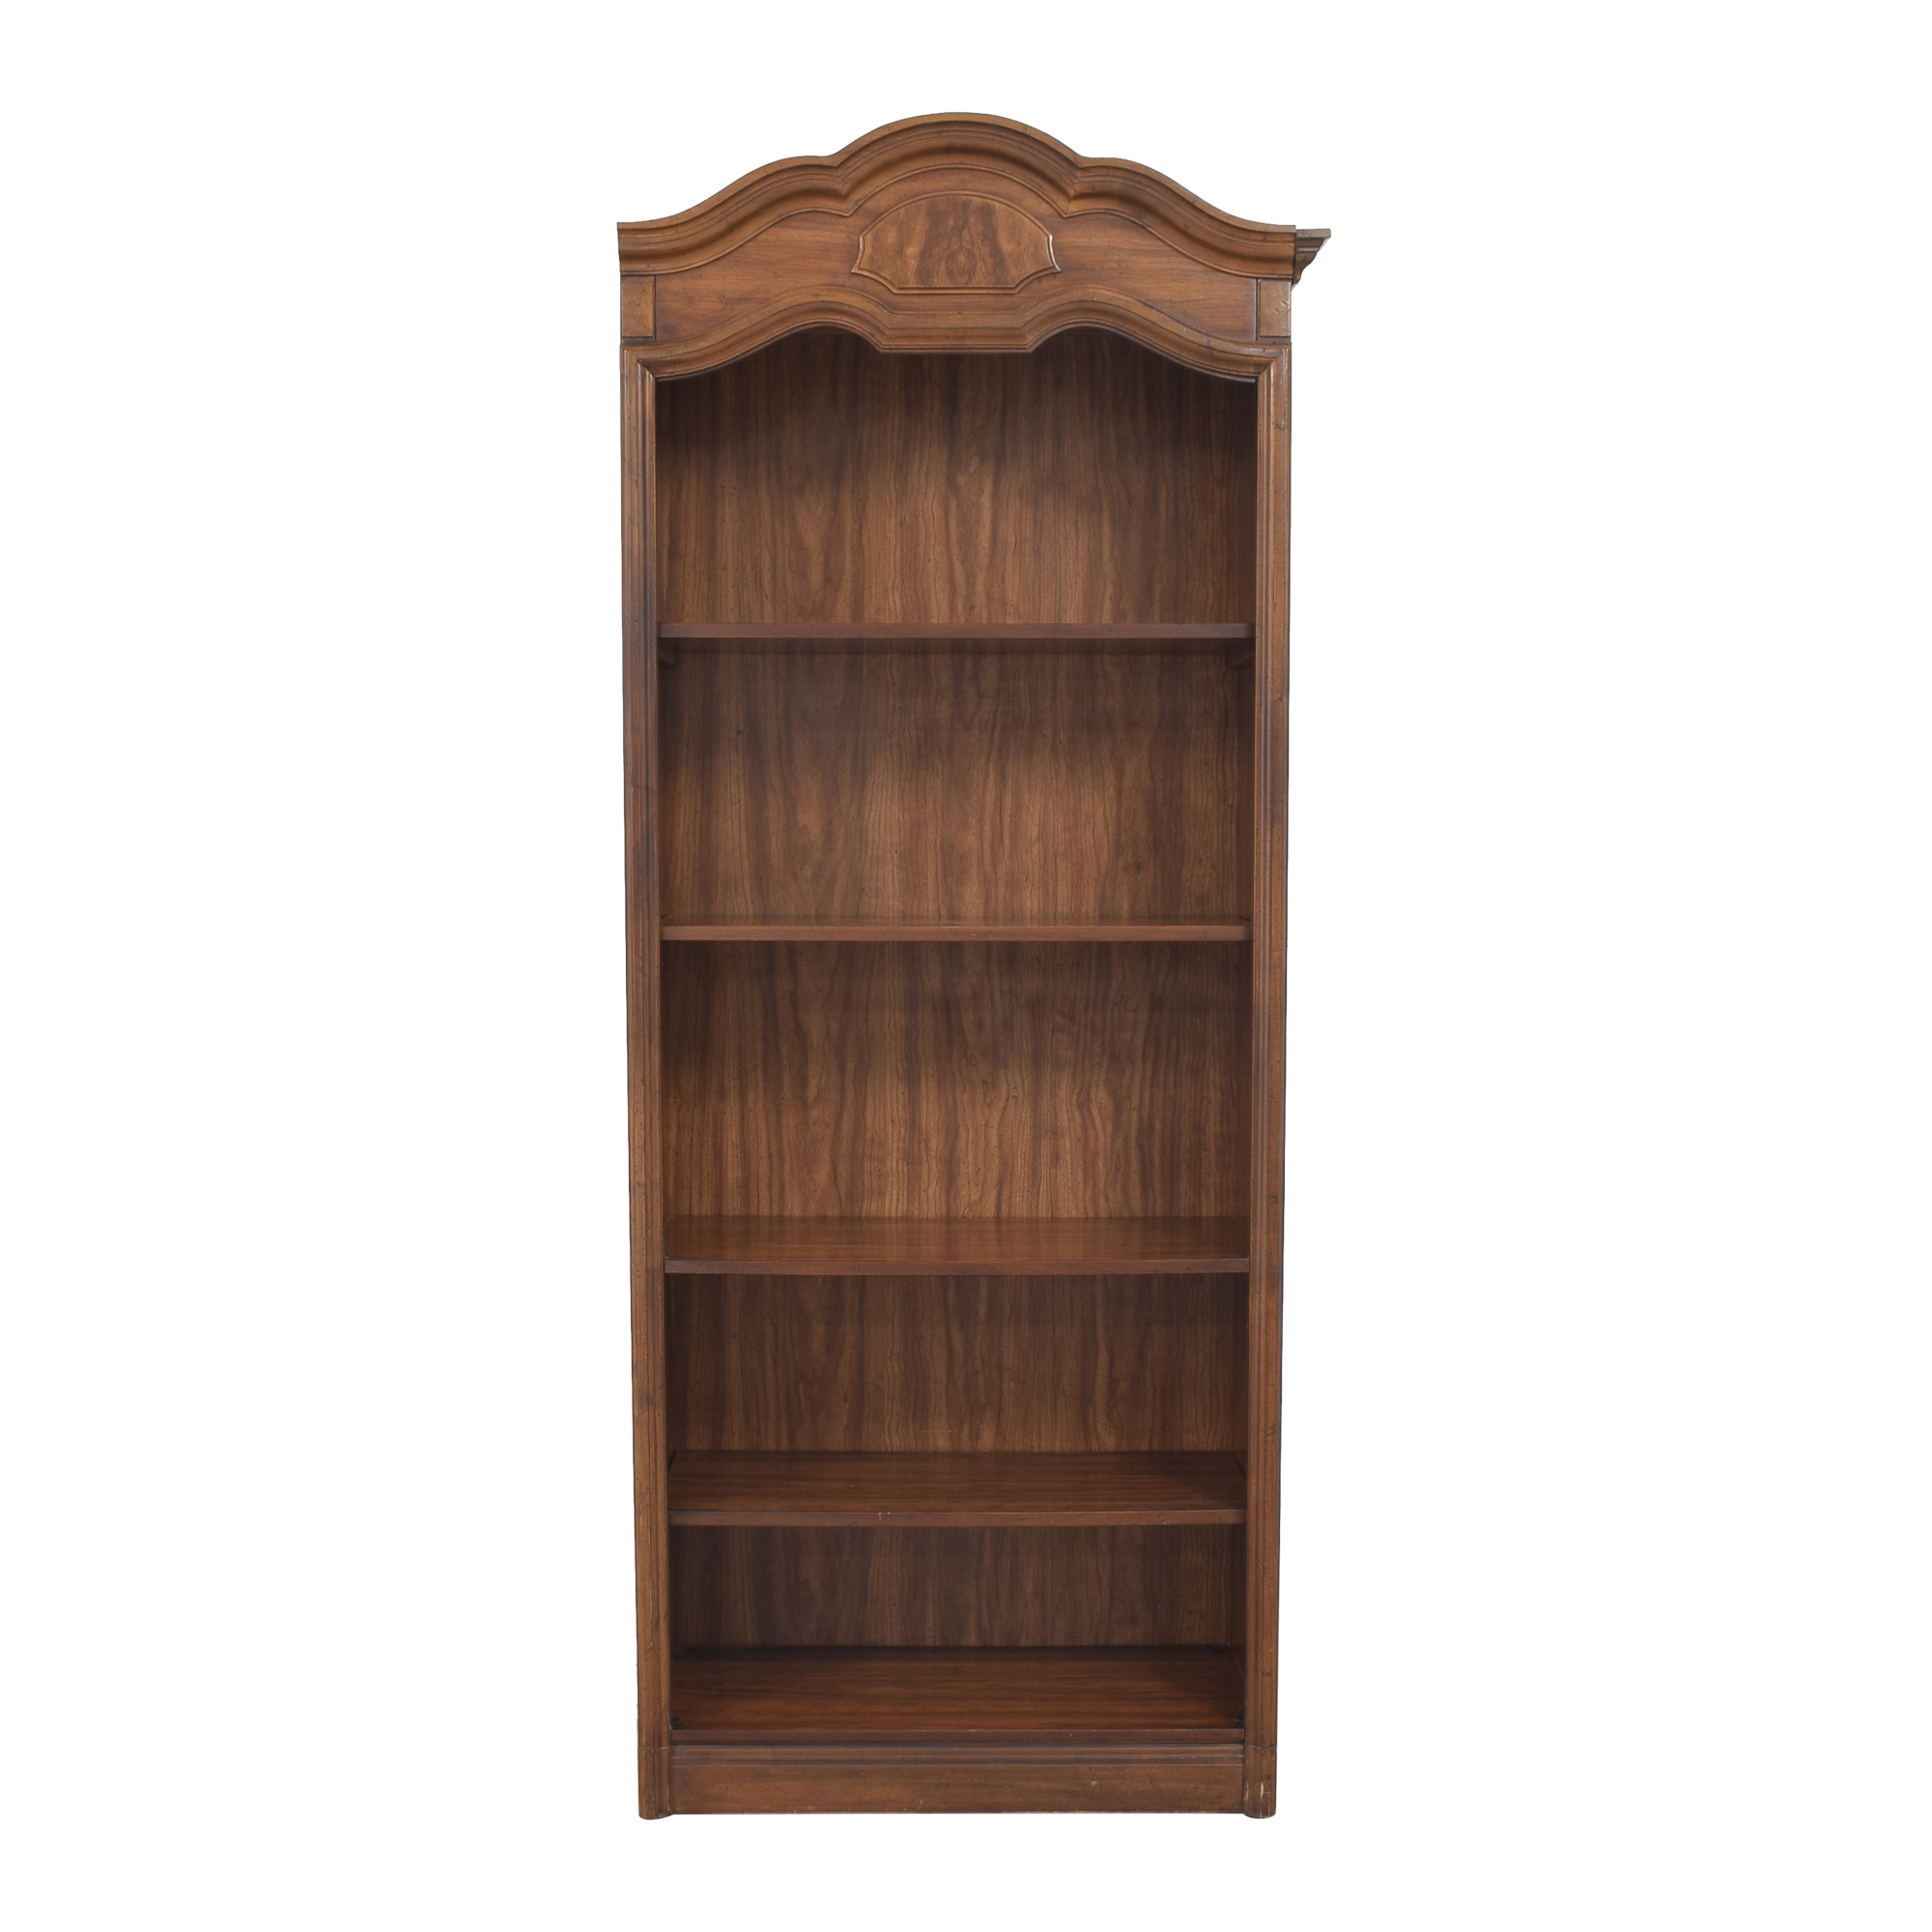 Drexel Heritage Drexel Heritage Tall Bookcase pa